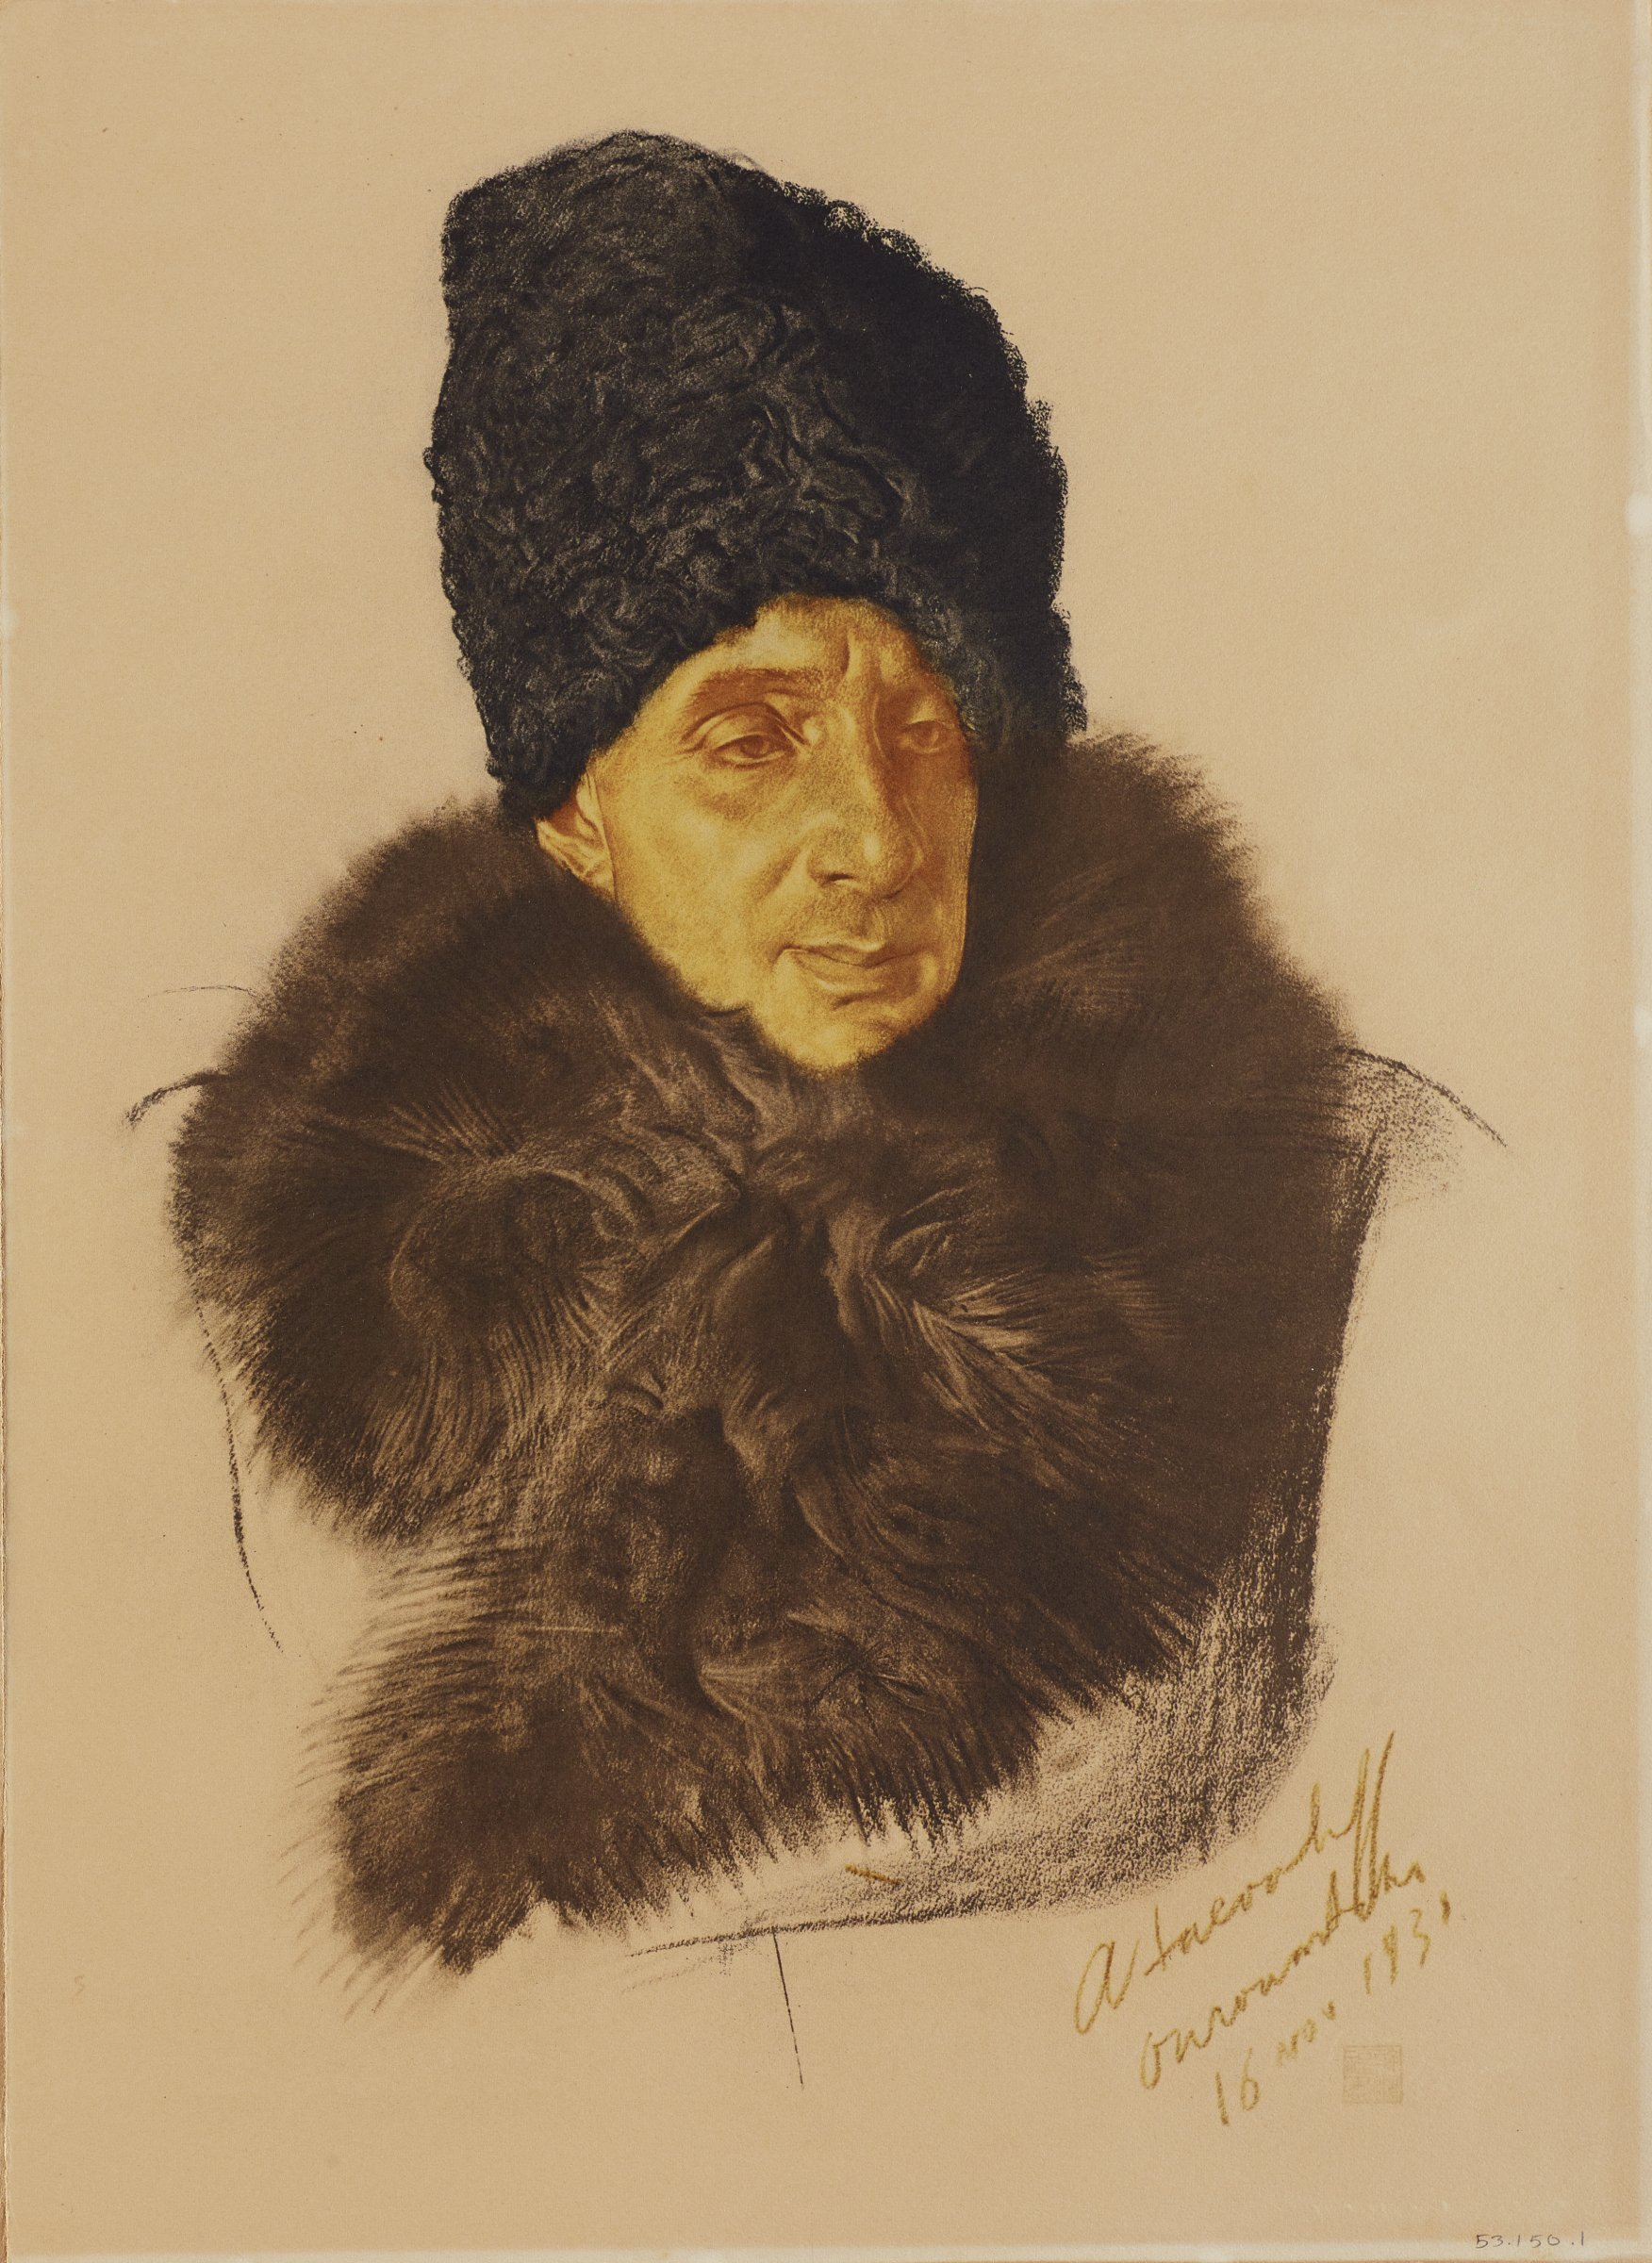 Portfolio of two page folios made of one sheet folded over in center. Identified on the recto of each first page of the folio. Image on the recto of the second page. Bust portrait of a male figure wearing a coat with a large, brown fur collar and a black fur hat. His body faces front as he turns his head slightly to the right. This series is a product of Jacovleff's involvement in the Expédition Citroën Centre-Asie.